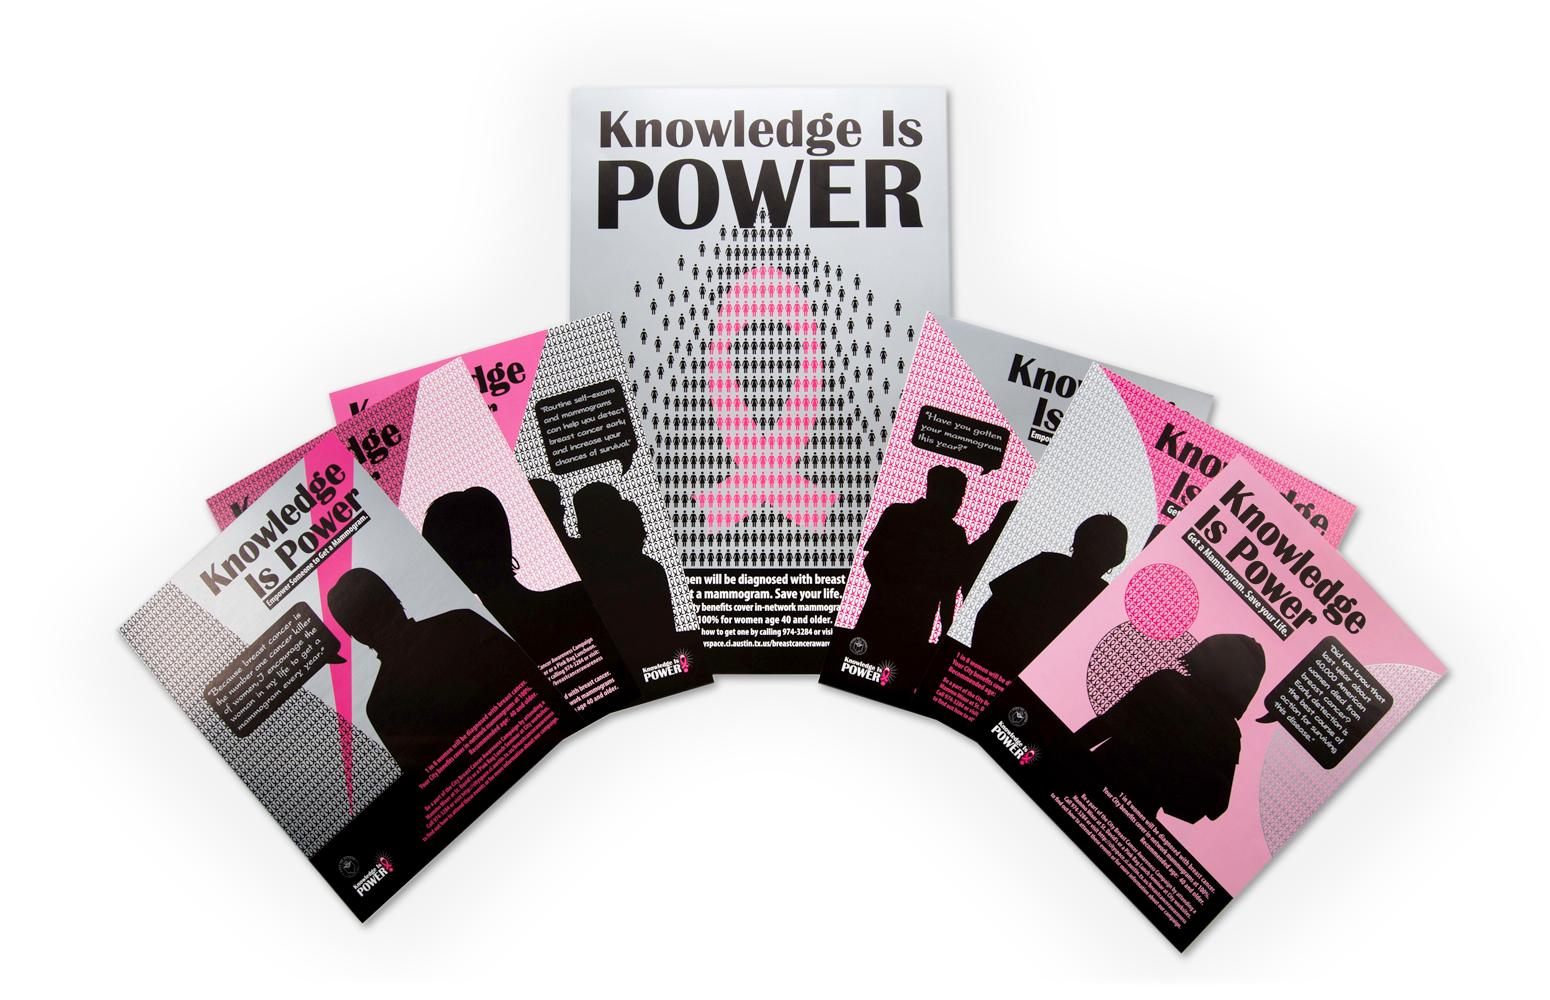 Knowledge is Power Breast Cancer Awareness Campaign